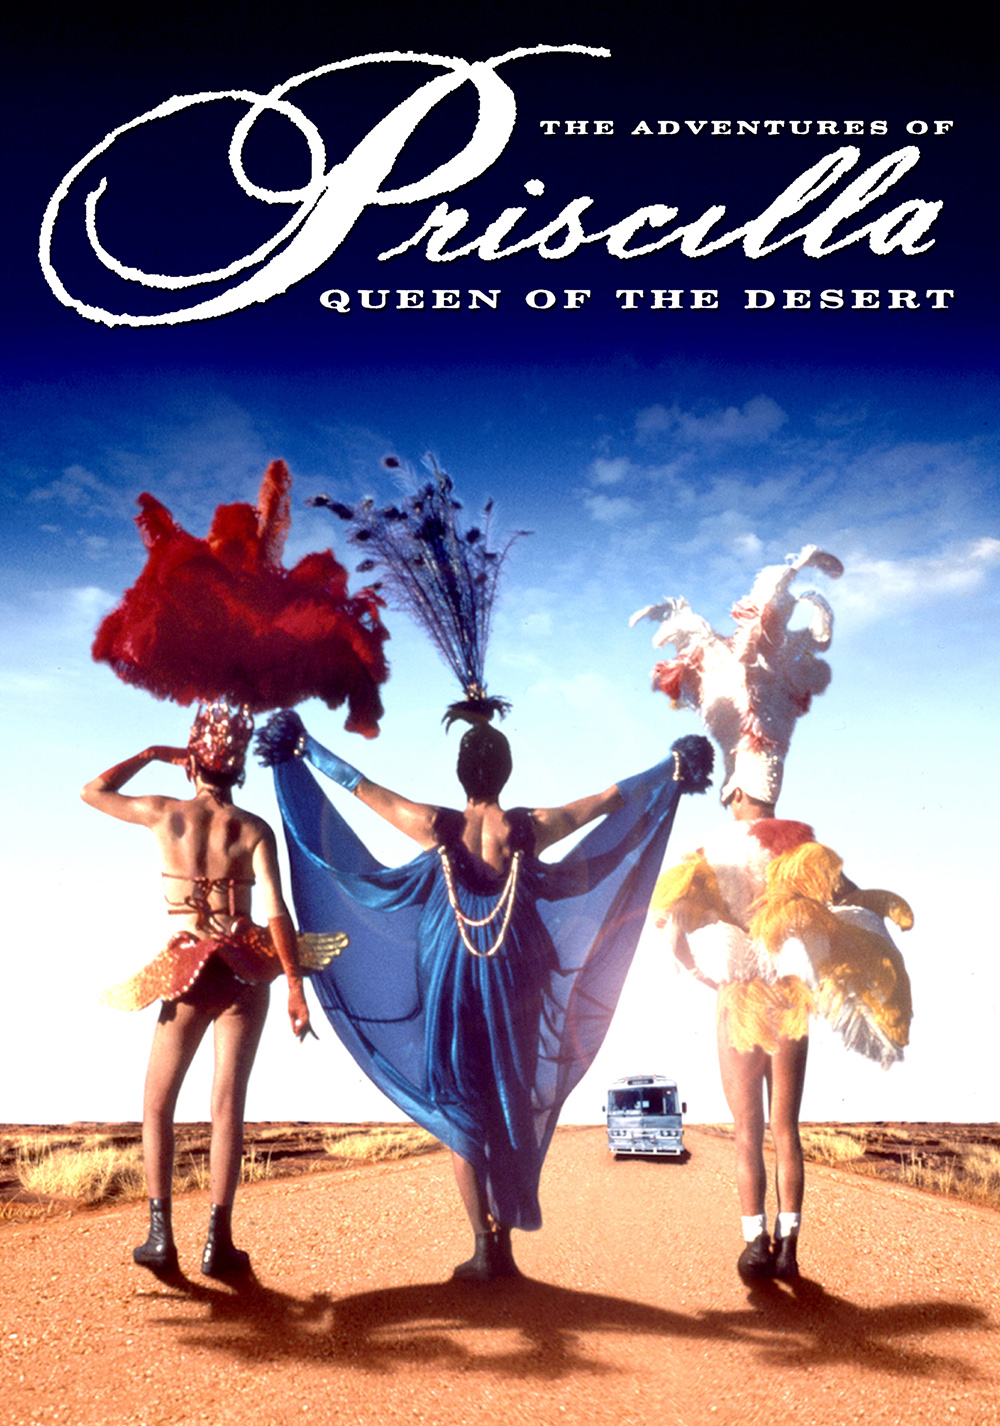 the-adventures-of-priscilla-queen-of-the-desert-531c389d21a2c